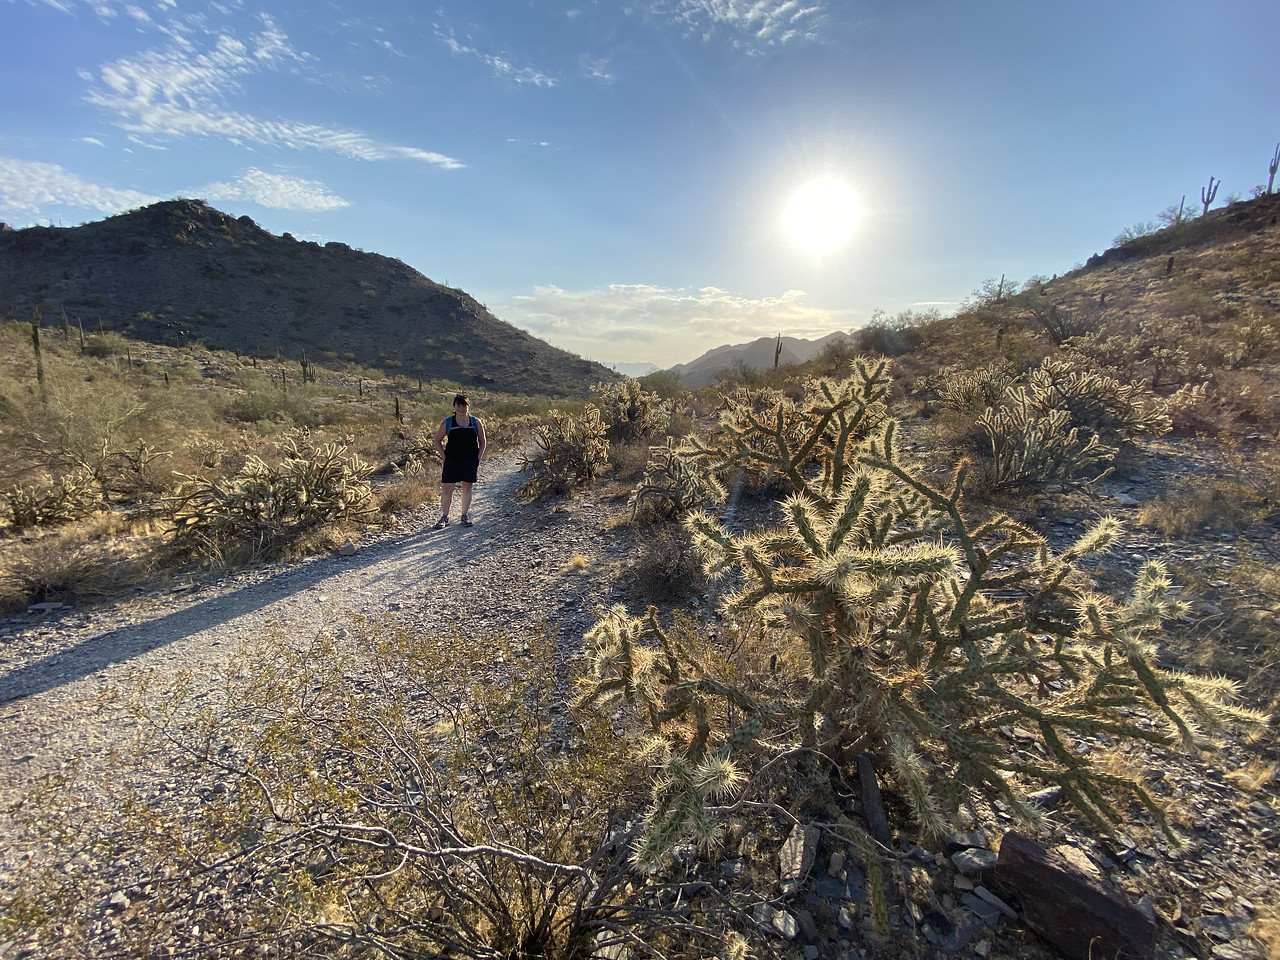 With Teddy Bear Cactus waiting in the foreground, a solo hiker makes her way along one of the hundreds of trails in the greater Phoenix area with an early-morning Arizona summer sun starting to raise the temperatures.